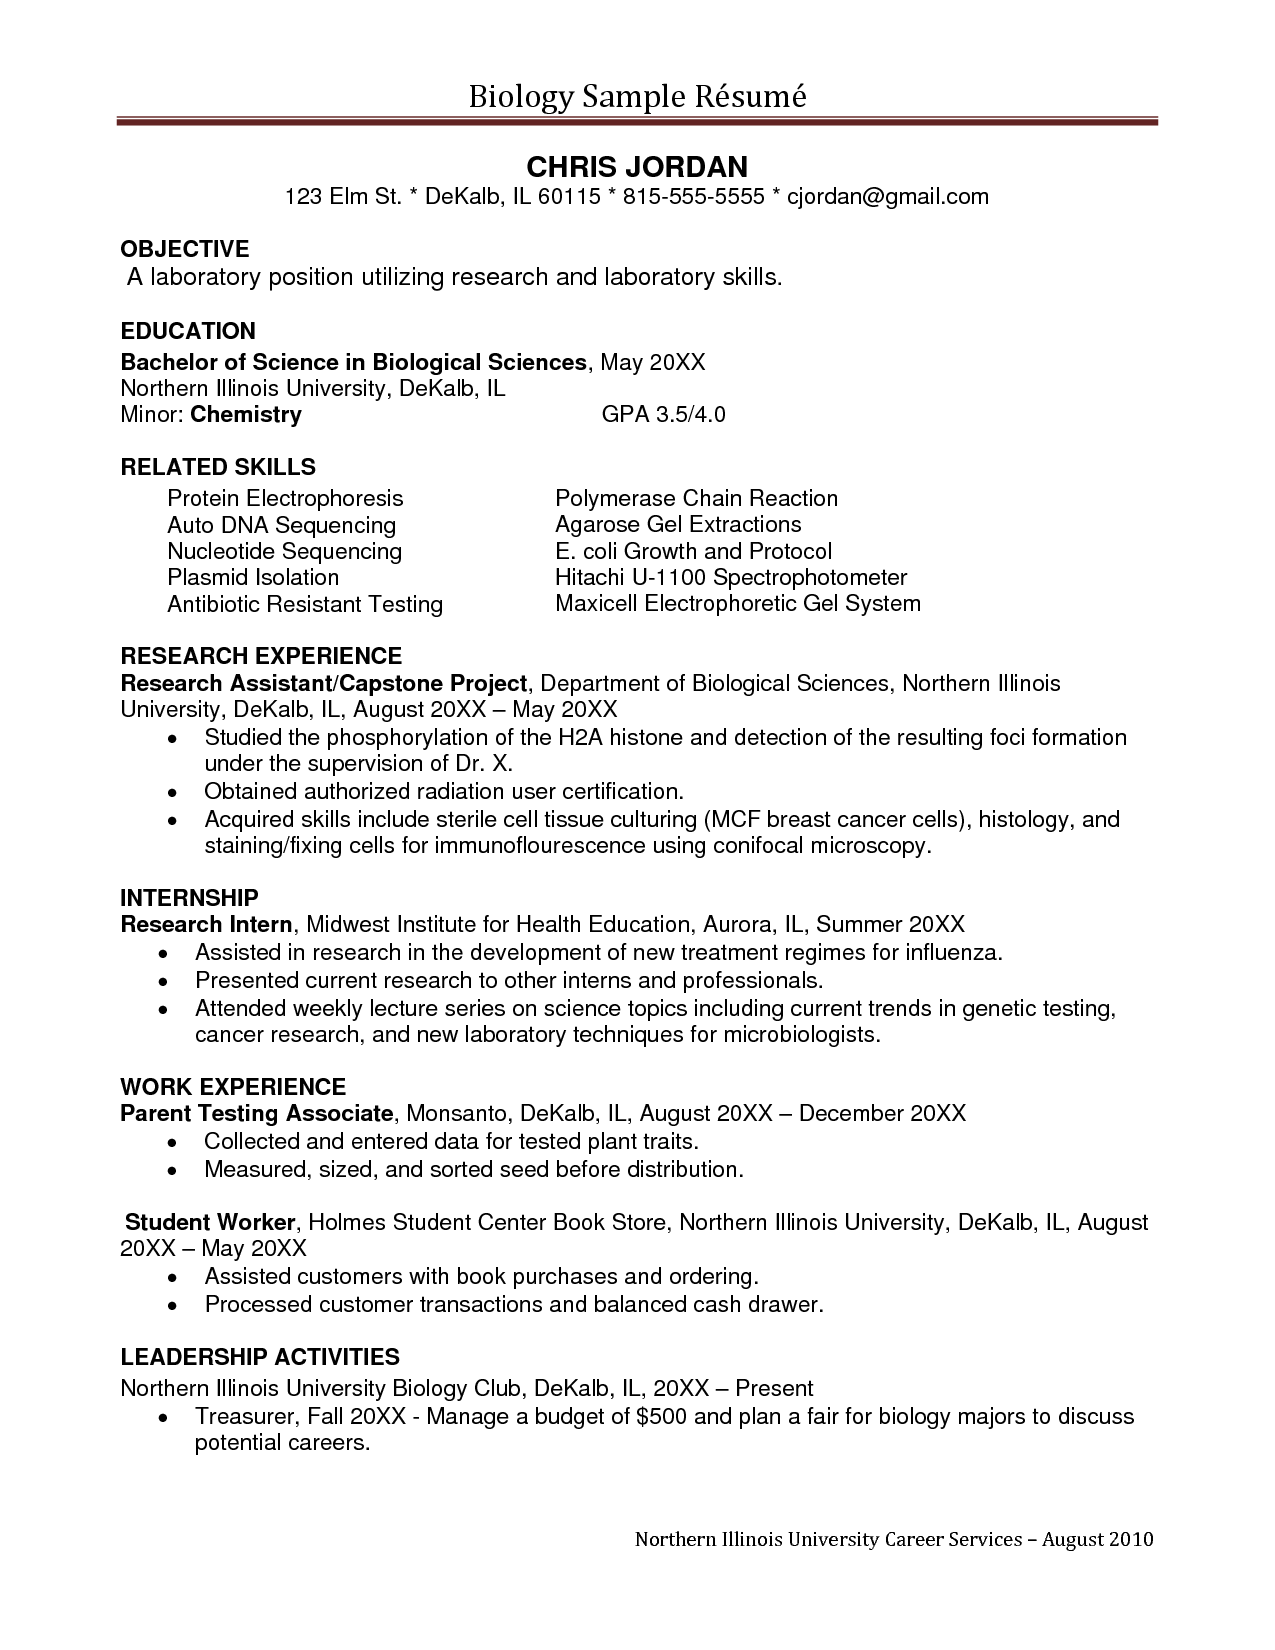 Administrative Assistant Resume Example Sample Undergraduate Research Assistant Resume Sampleĺ